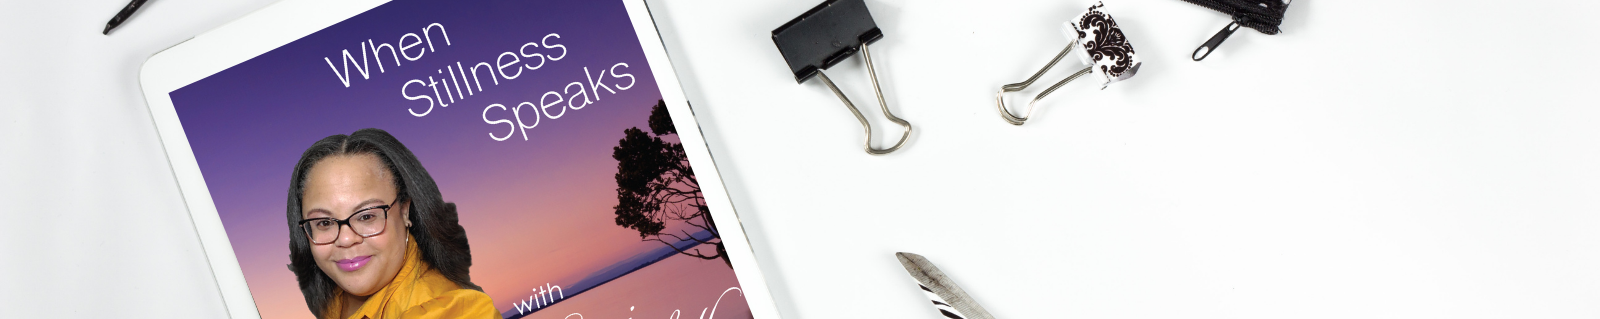 iPad, paper clips, When Stillness Speaks podcast cover